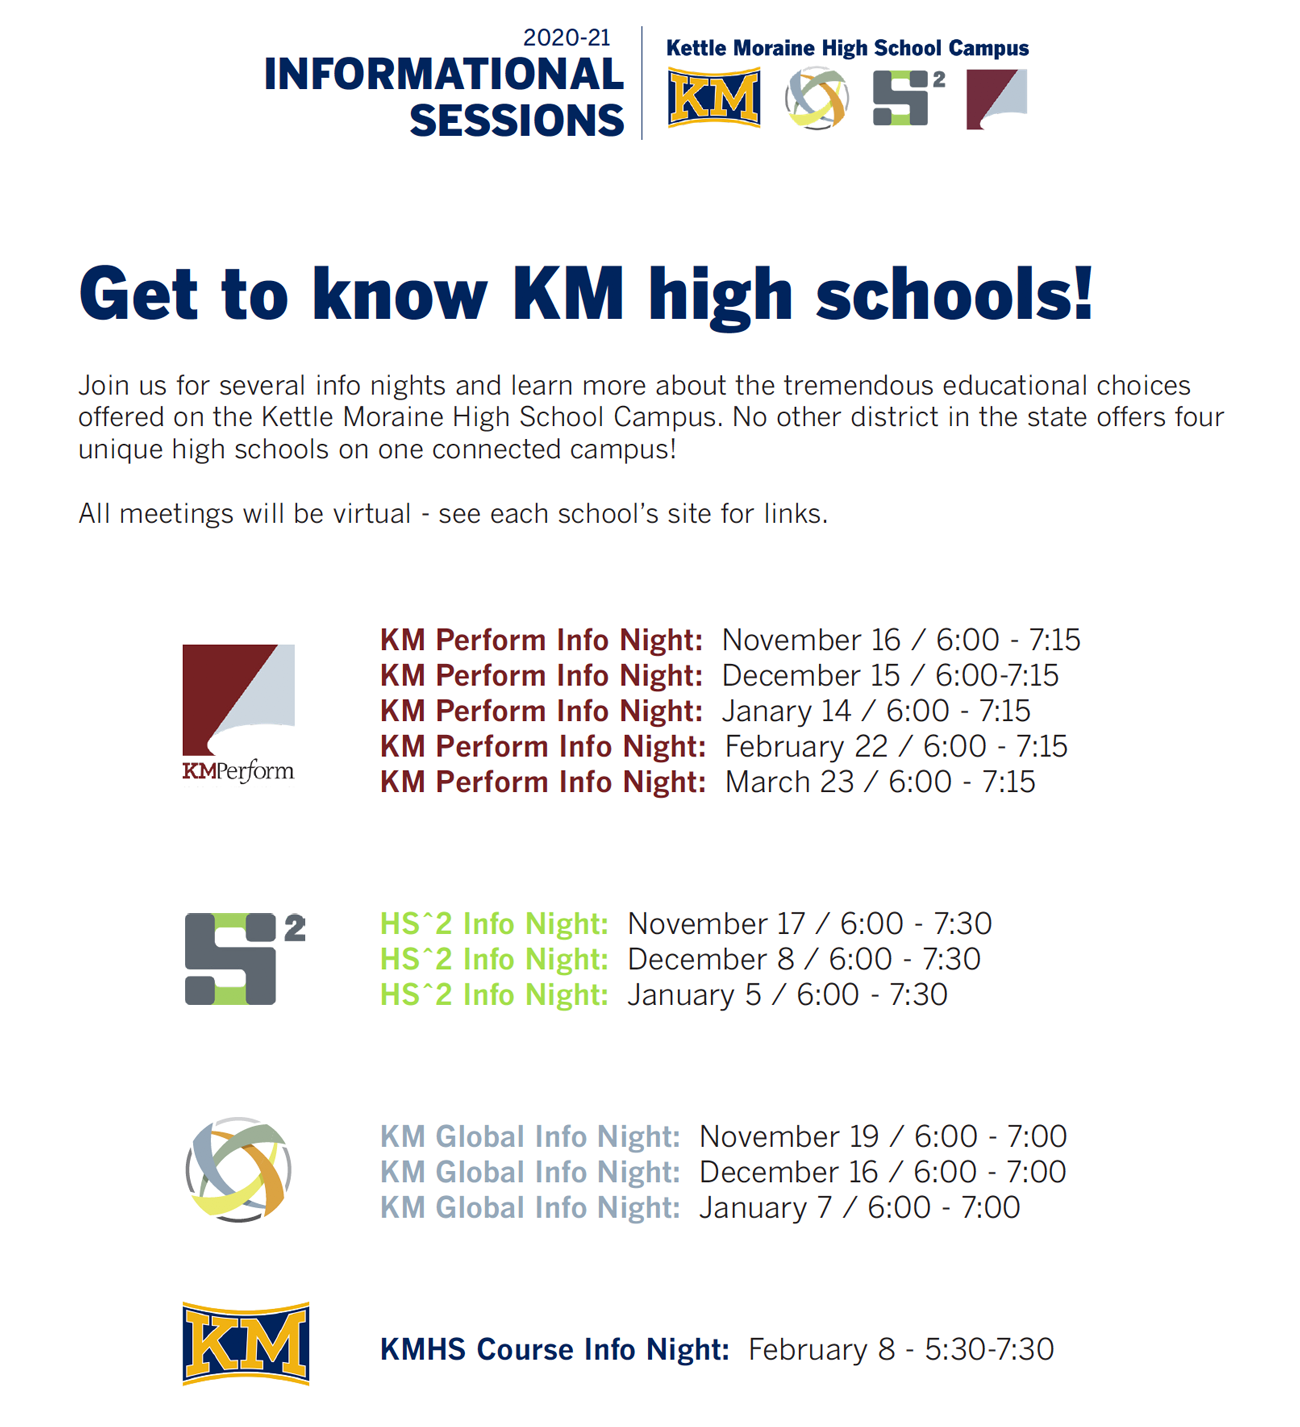 KMHS campus info sessions